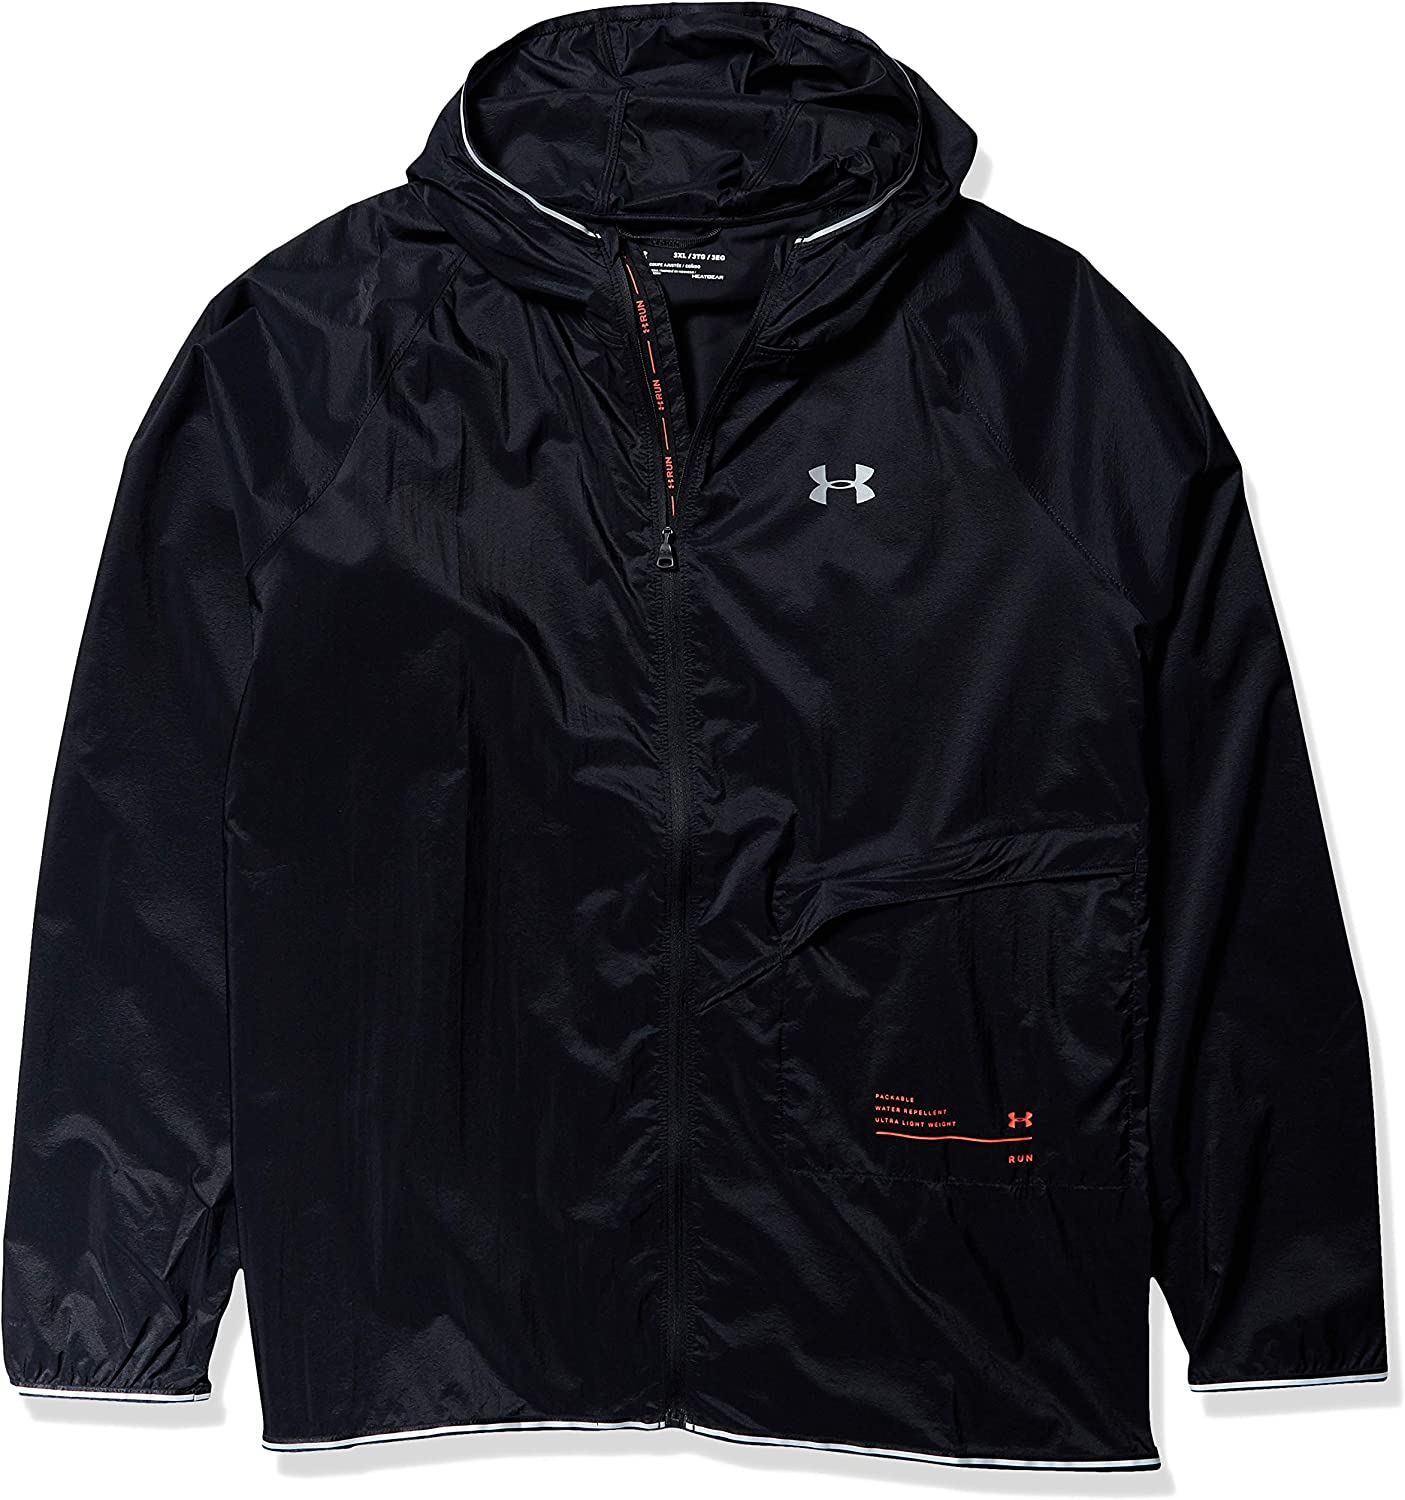 Under Armour Mens Storm Qualifier Packable